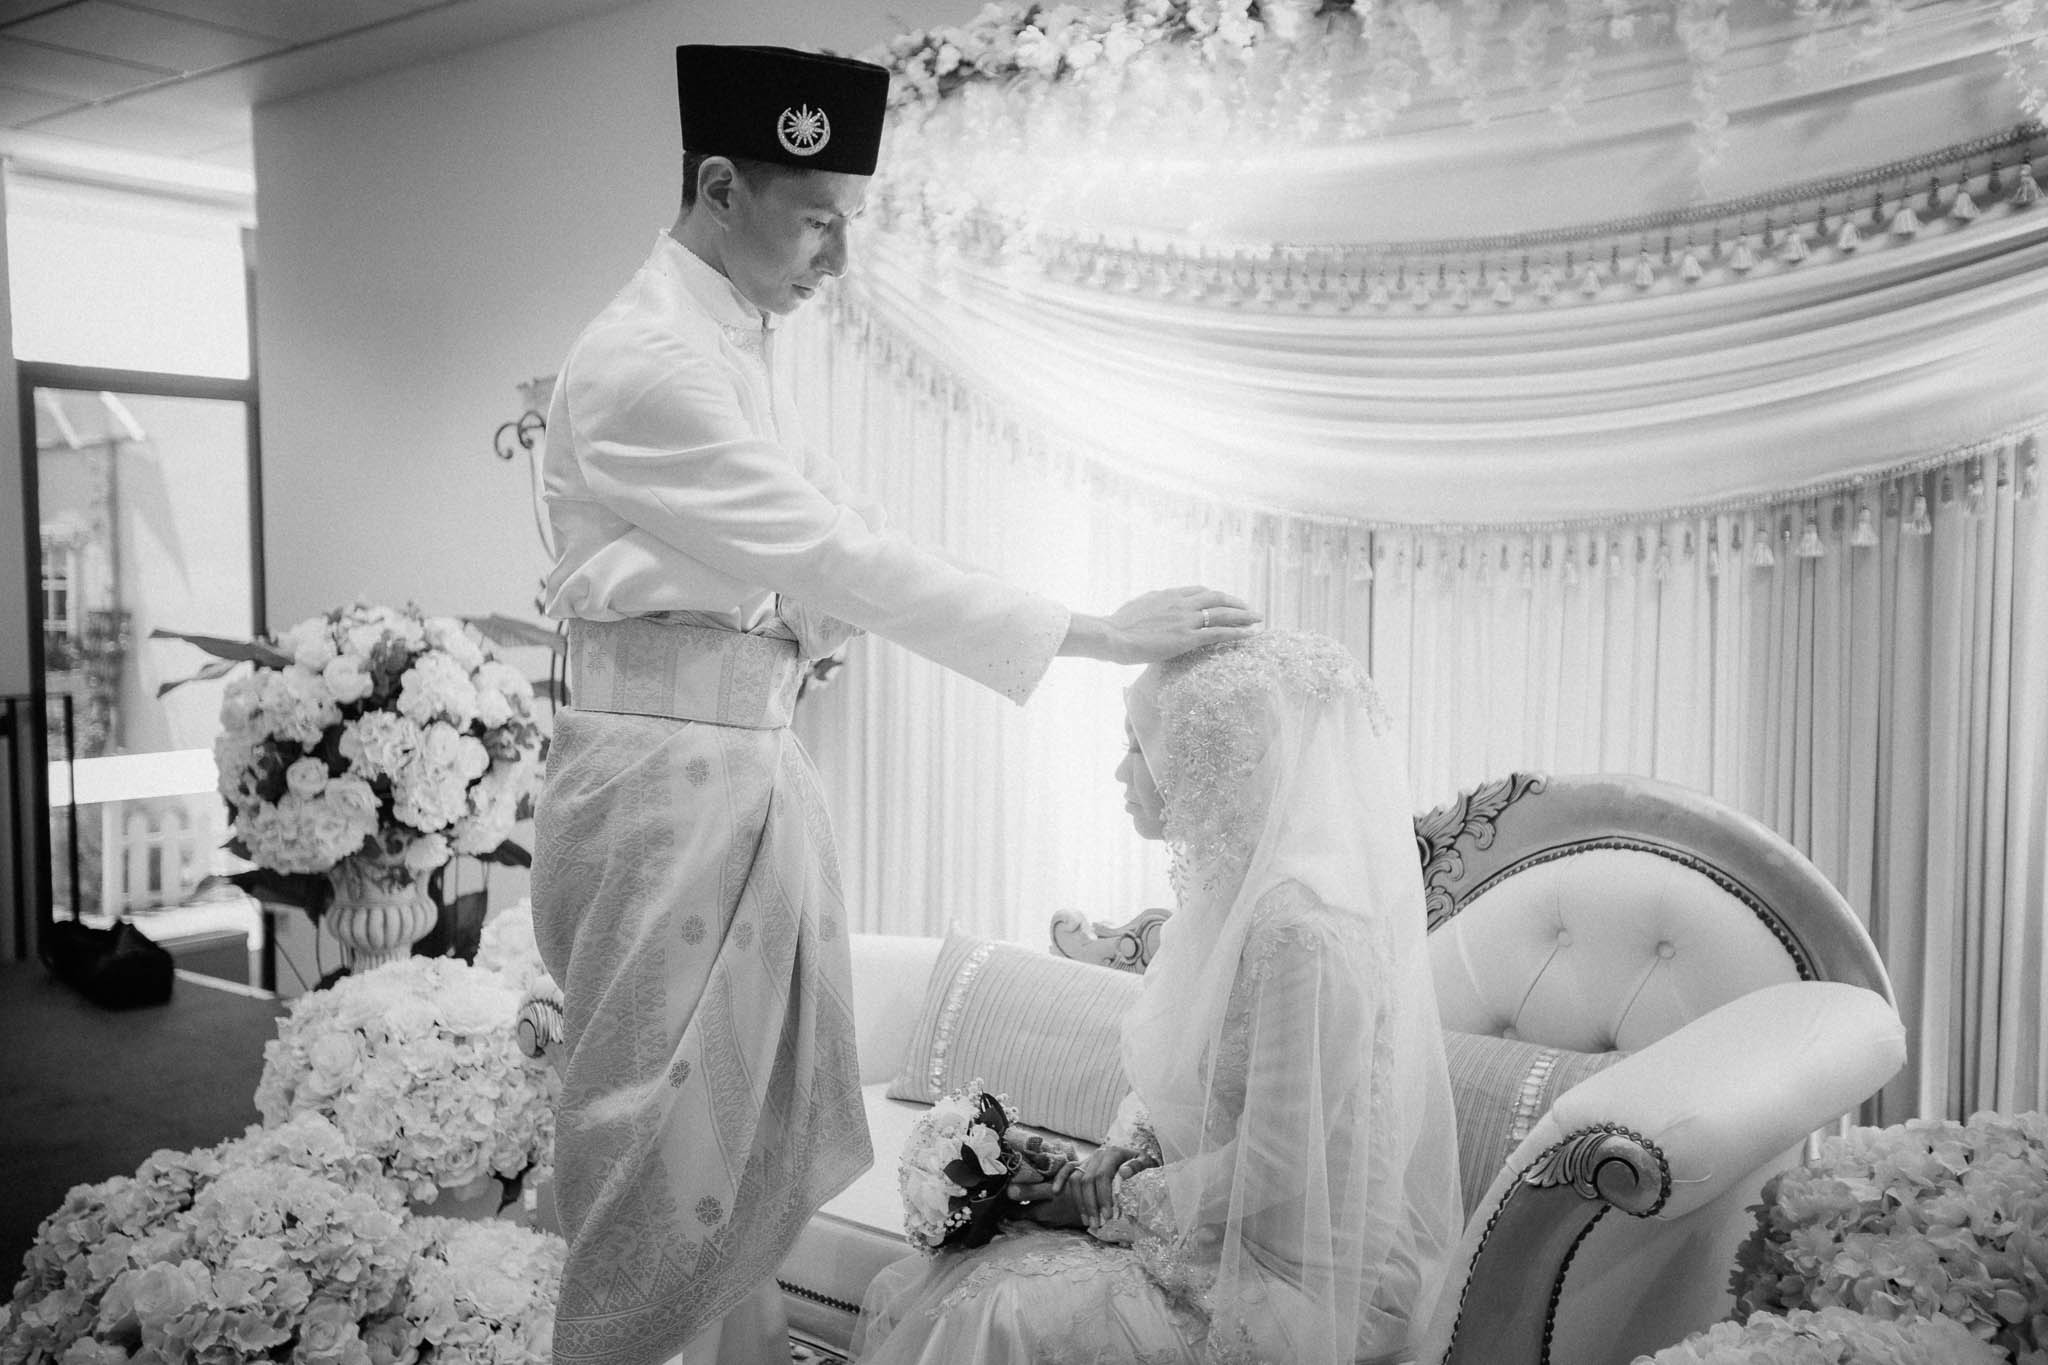 singapore-wedding-photographer-wedding-halimah-muhsin-020.jpg